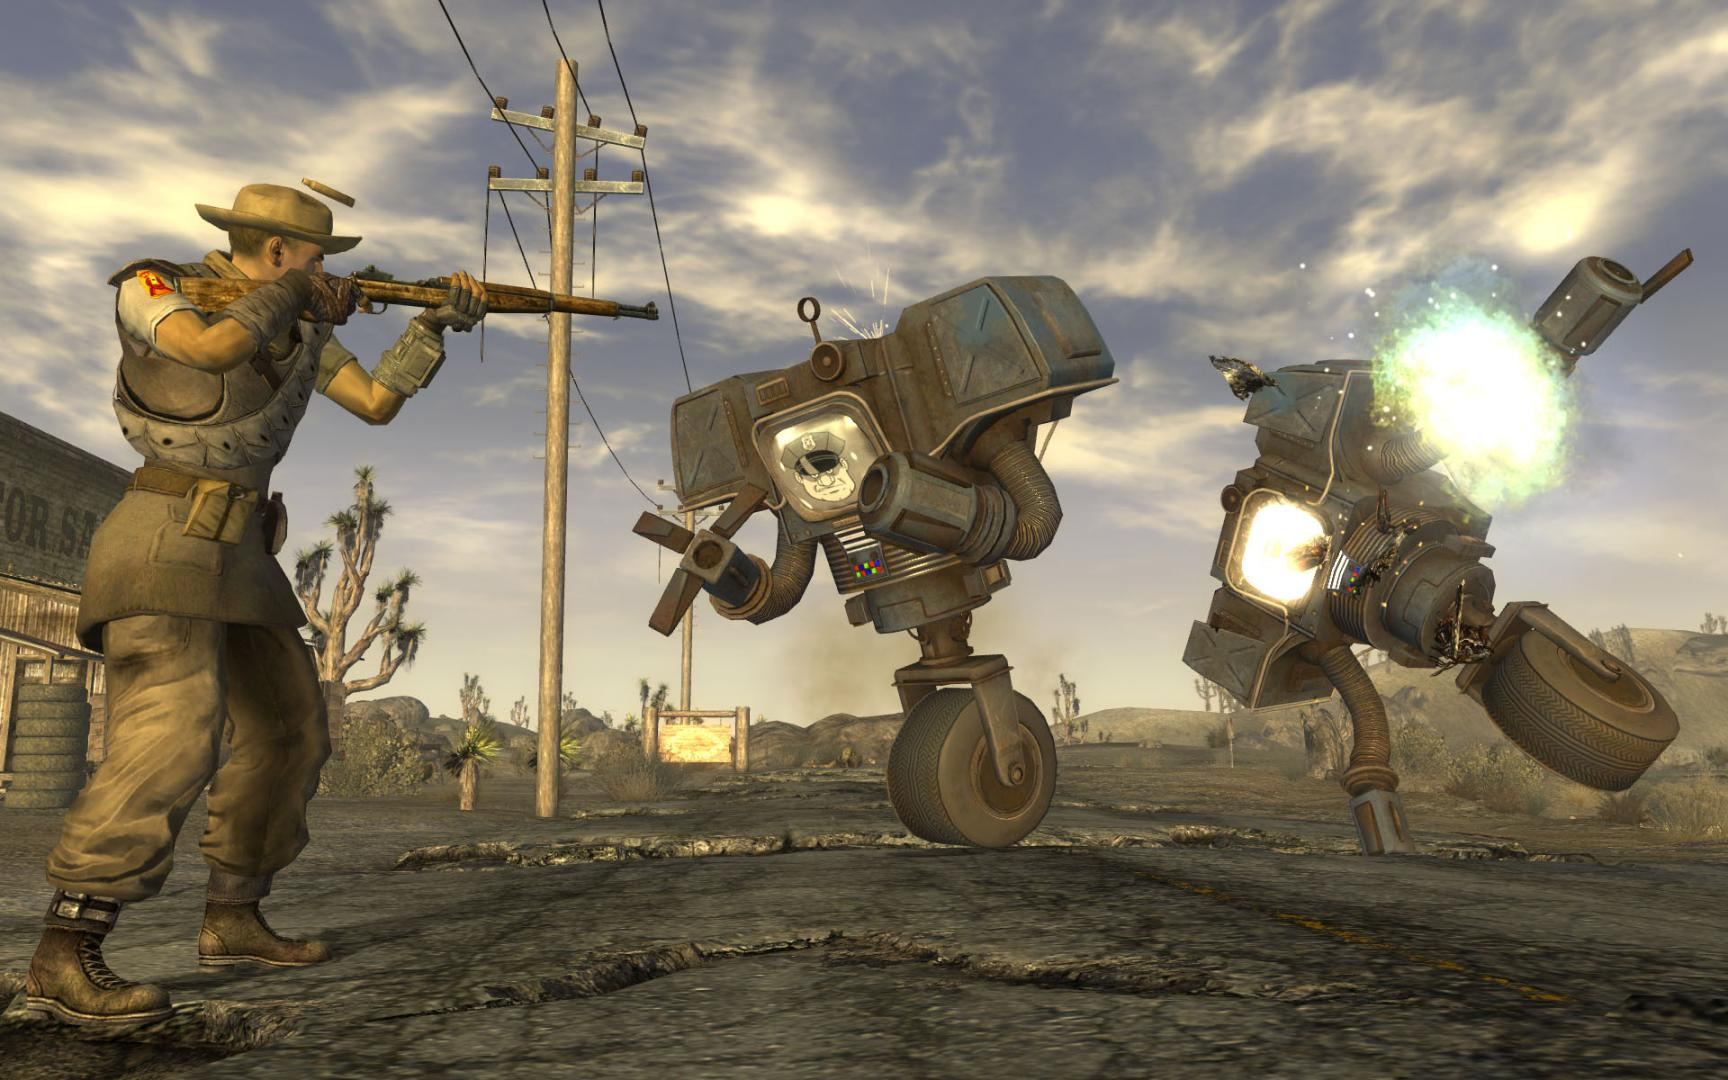 Fallout: New Vegas mod adds the Enclave as a playable faction